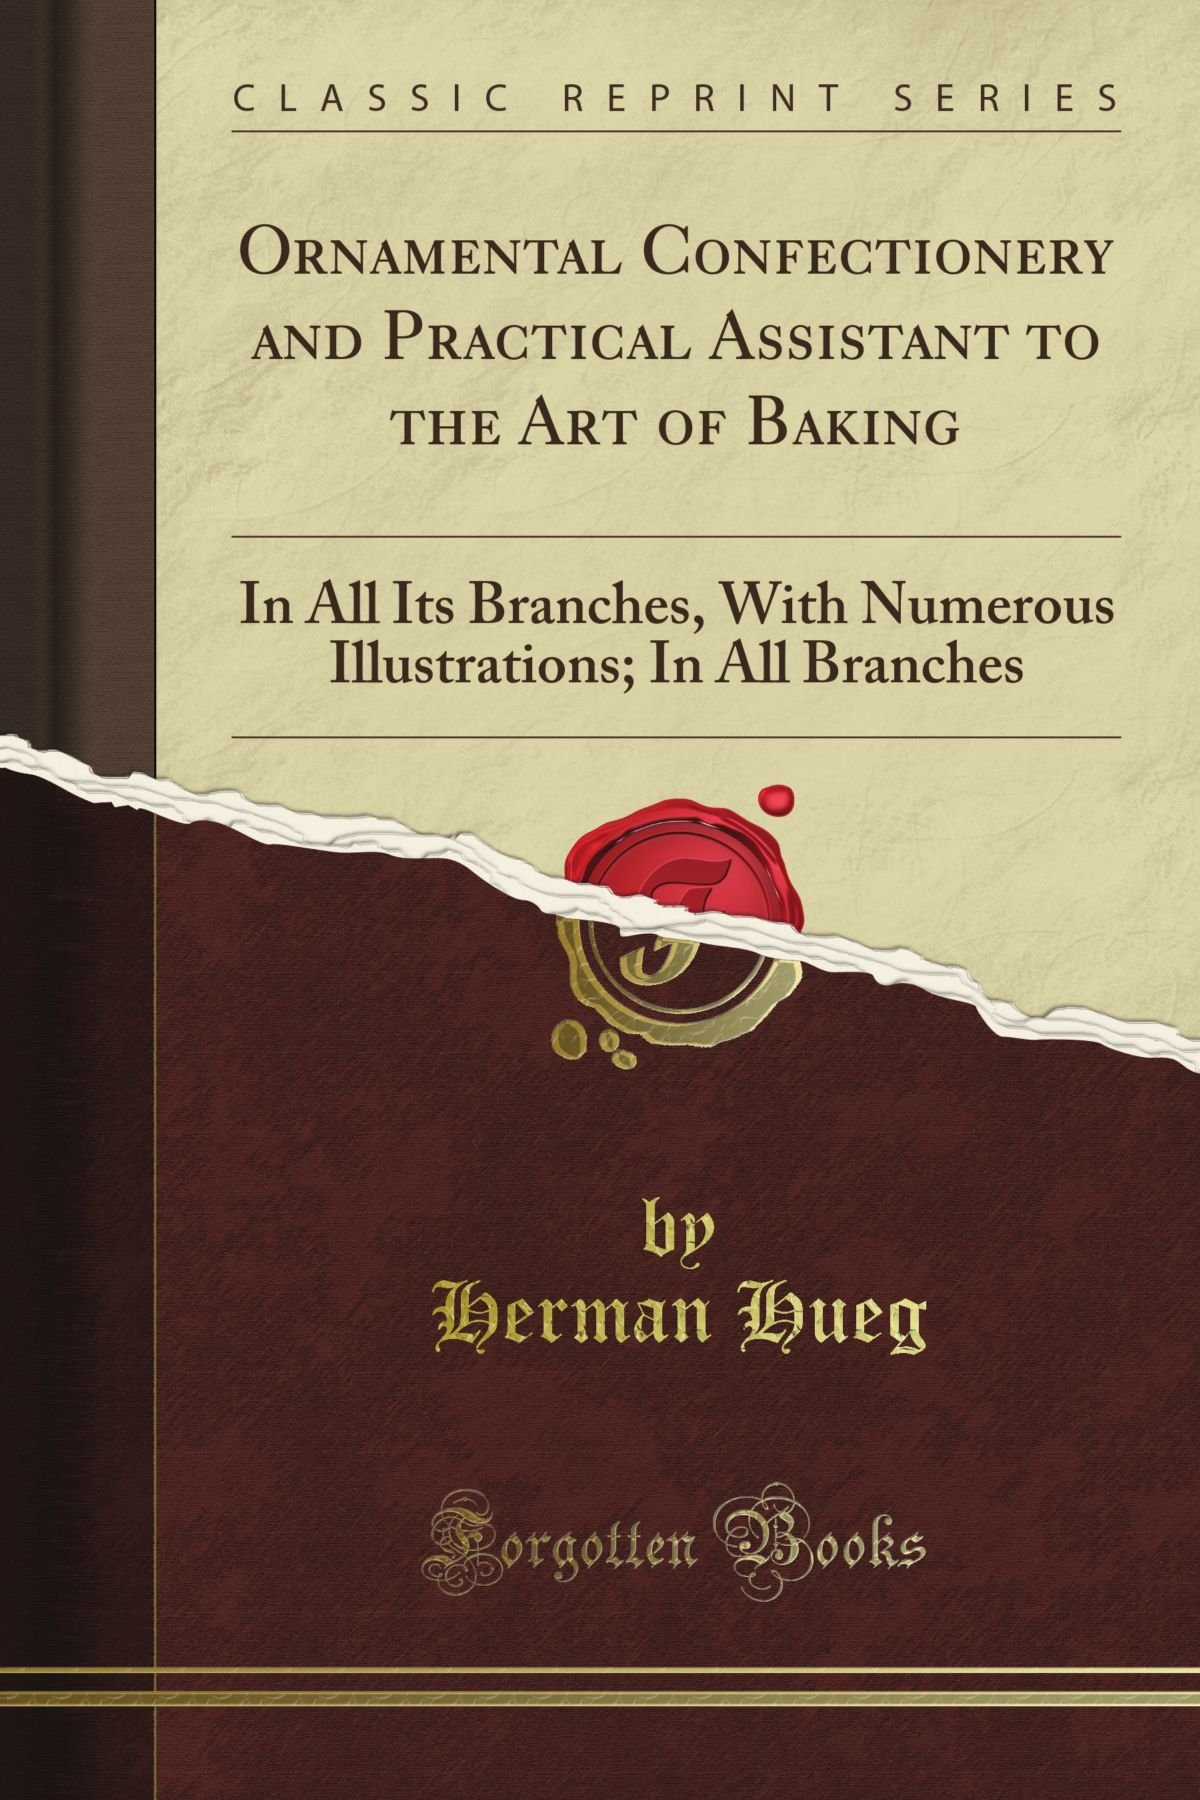 Ornamental Confectionery and Practical Assistant to the Art of Baking: In All Its Branches, With Numerous Illustrations; In All Branches (Classic Reprint) ebook